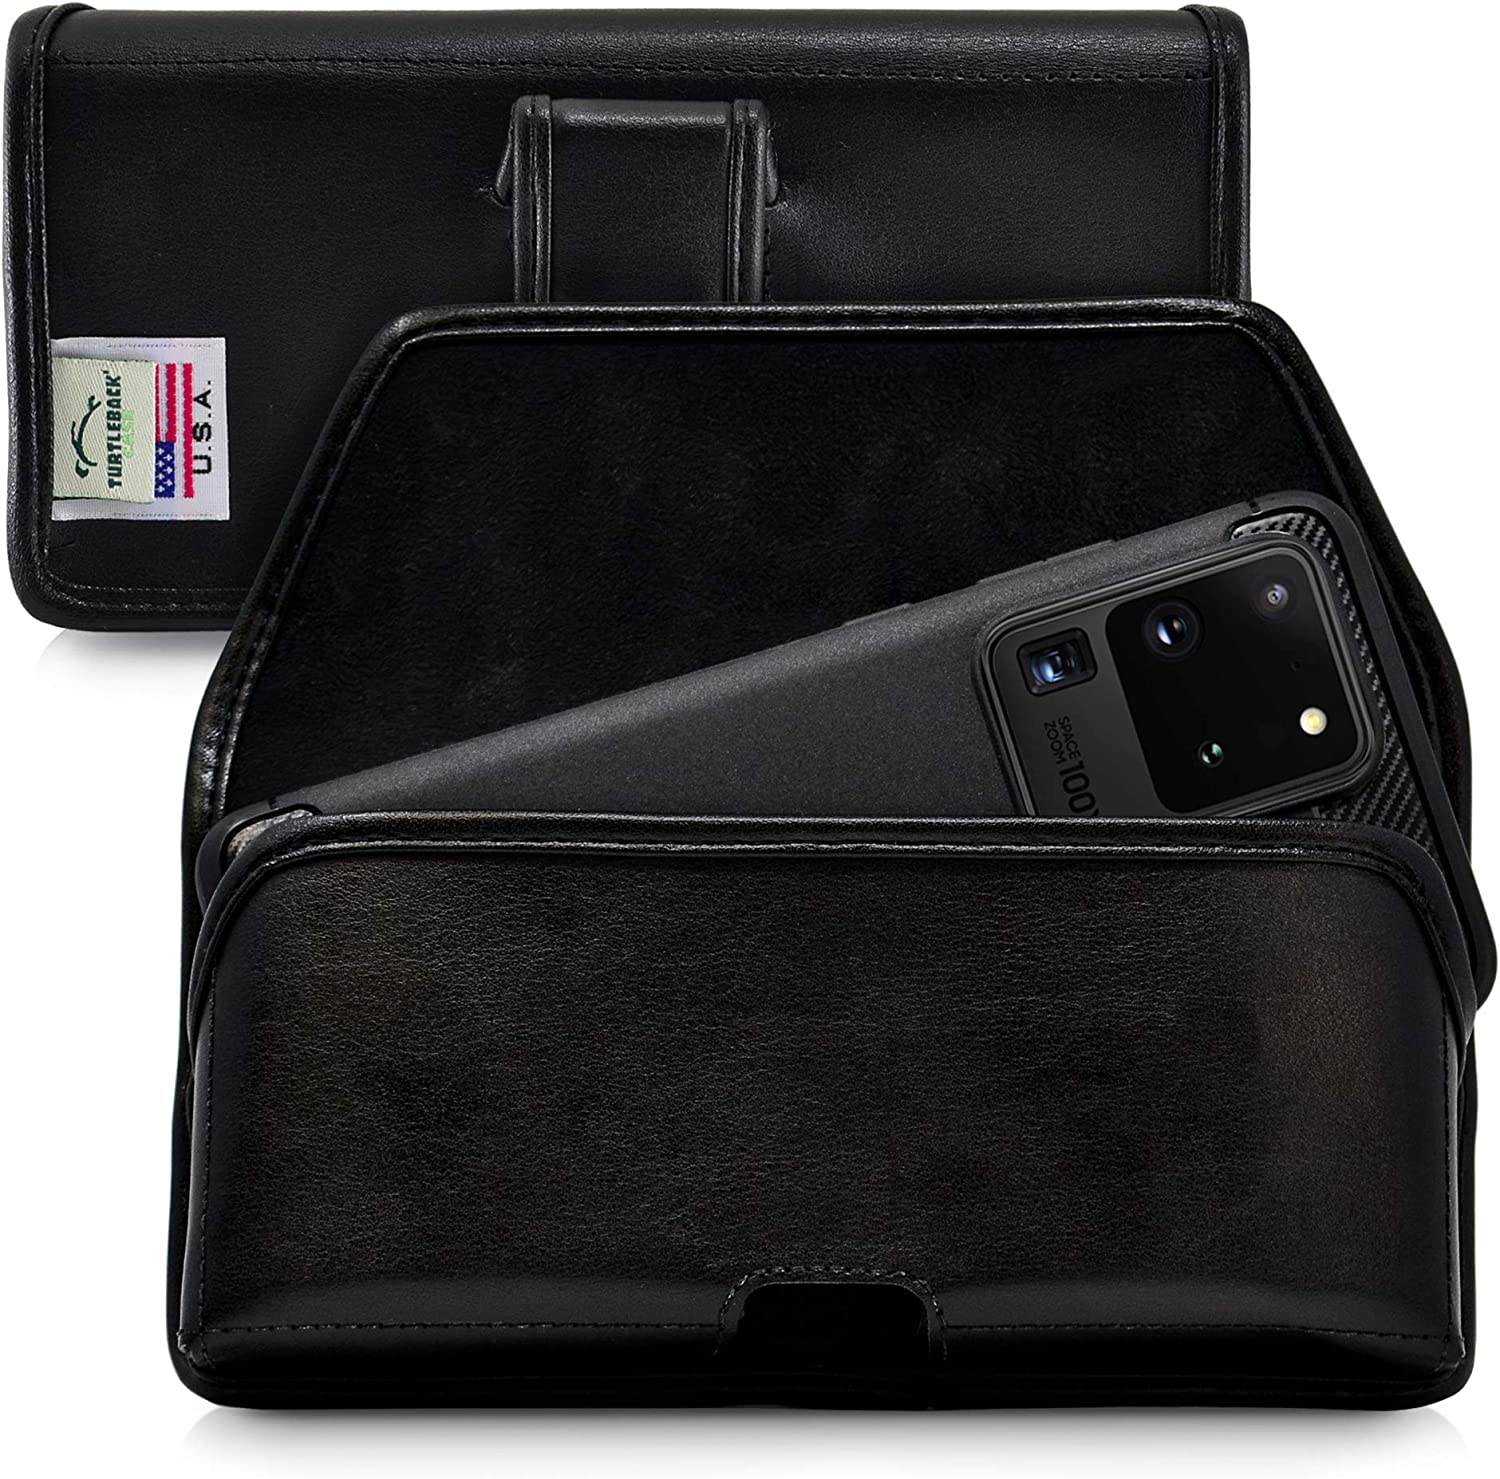 Turtleback Holster Designed for Galaxy S20 S21 Ultra (2020) Belt Case Black Leather Pouch with Executive Belt Clip, Horizontal Made in USA